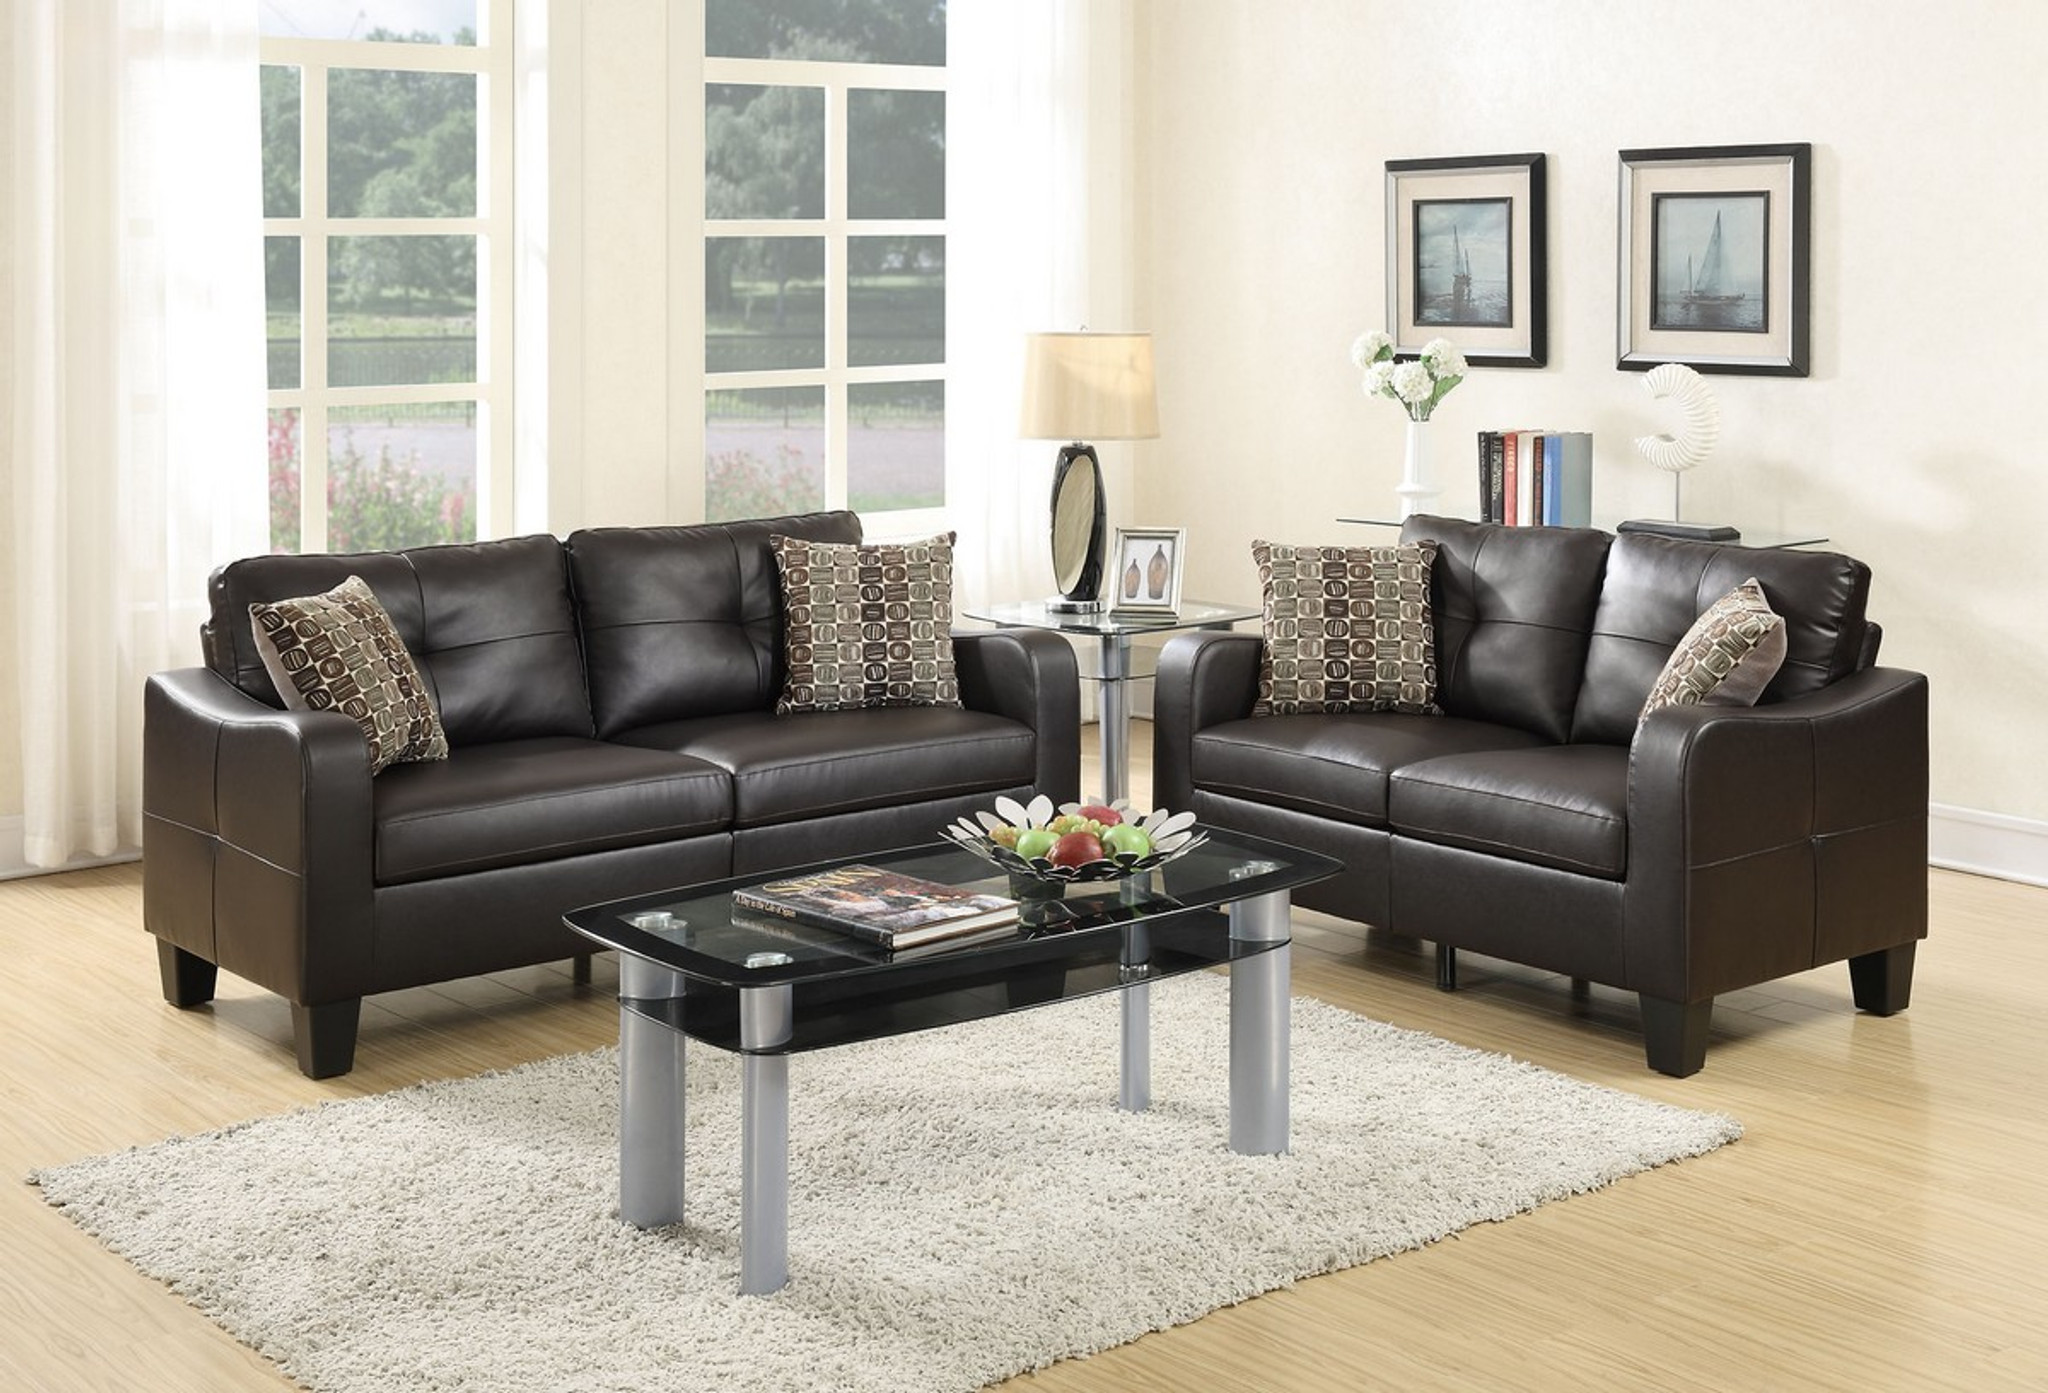 LOVESEAT SOFA SET WITH FOUR ACCENT PILLOWS AND IN ESPRESSO BONDED LEATHER